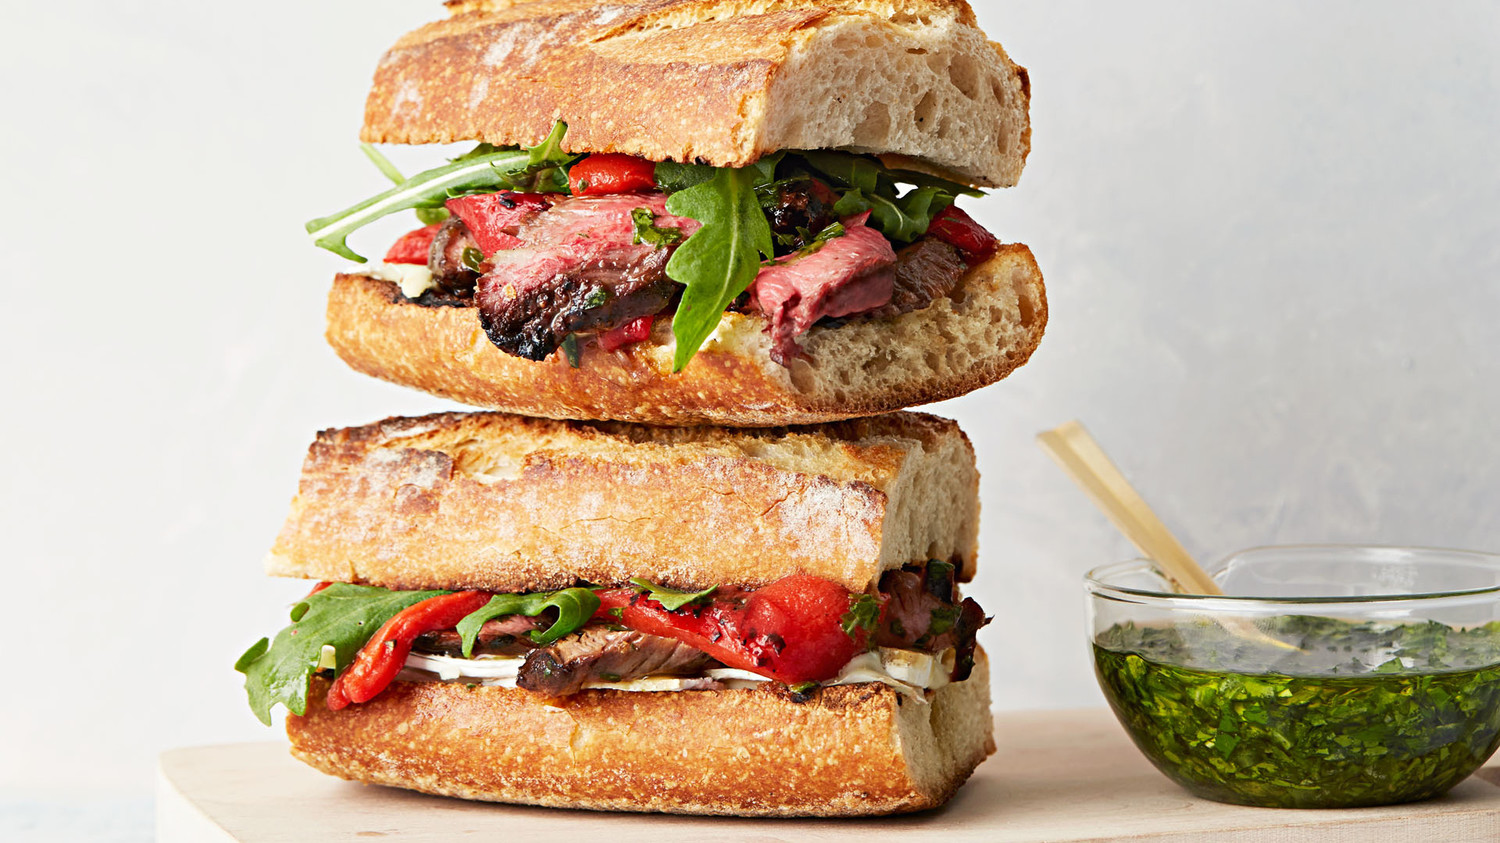 Steak And Brie Sandwich With Chimichurri